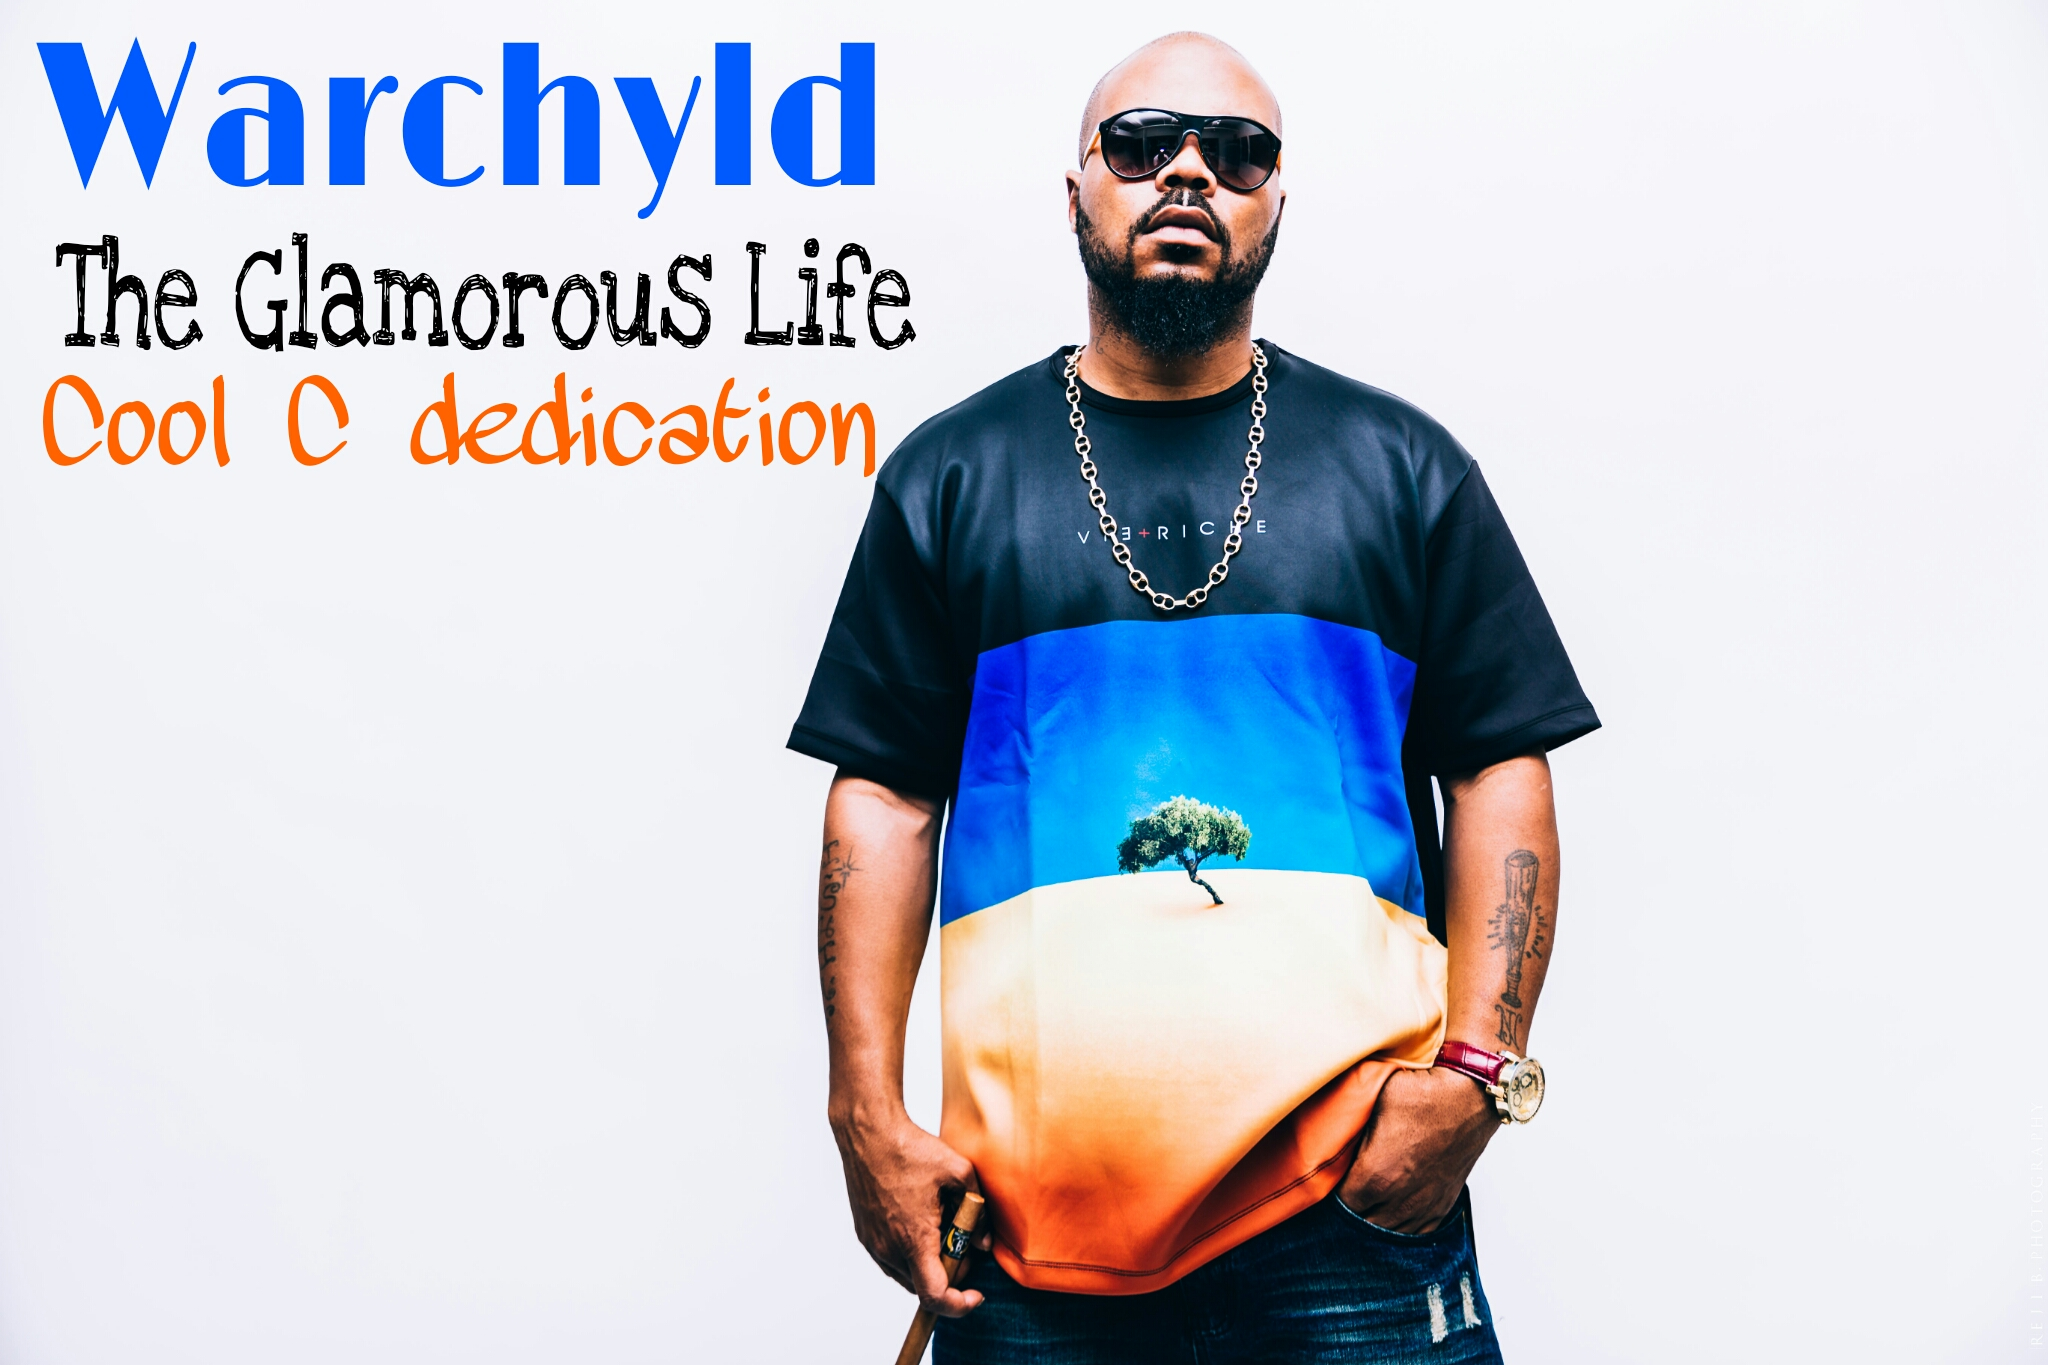 Warchyld TheGlamorousLife CoolC Dedication Execution